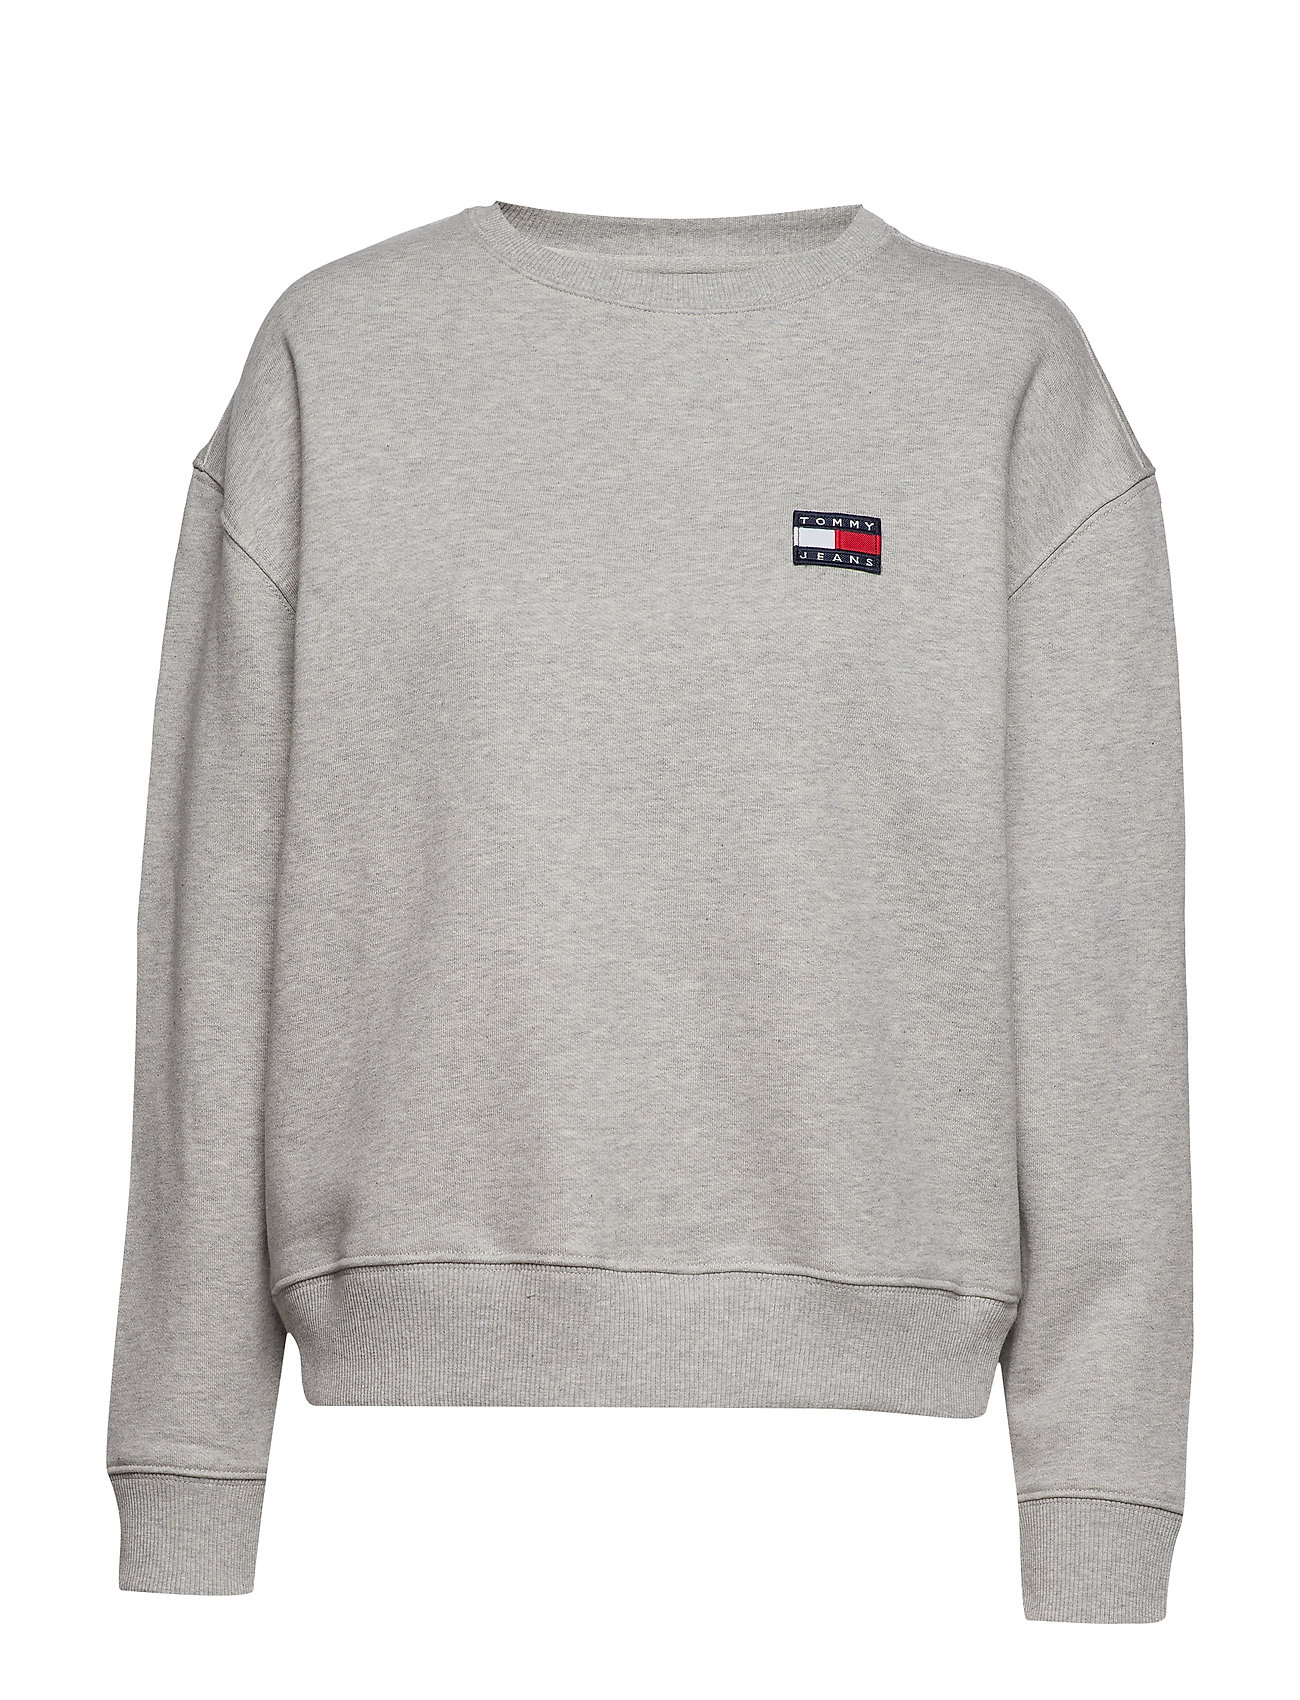 Tommy Jeans TJW TOMMY BADGE CREW - LT GREY HTR